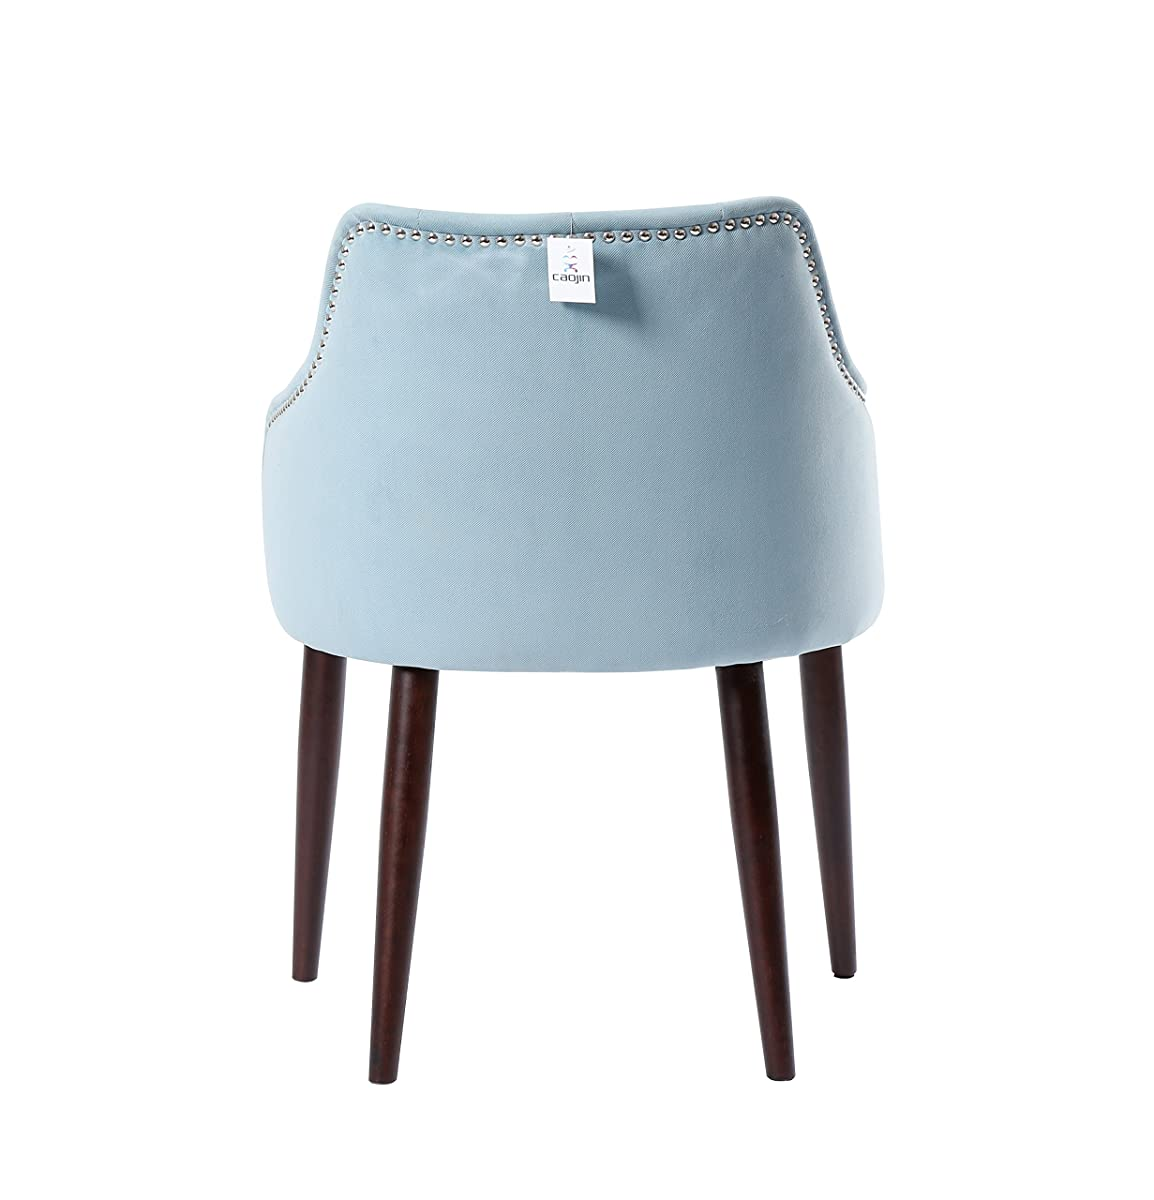 Caojin Classic Fabric Tufted Upholstered Dining Chair with Solid Wood Legs and Nailhead, Aqua, Set of 2